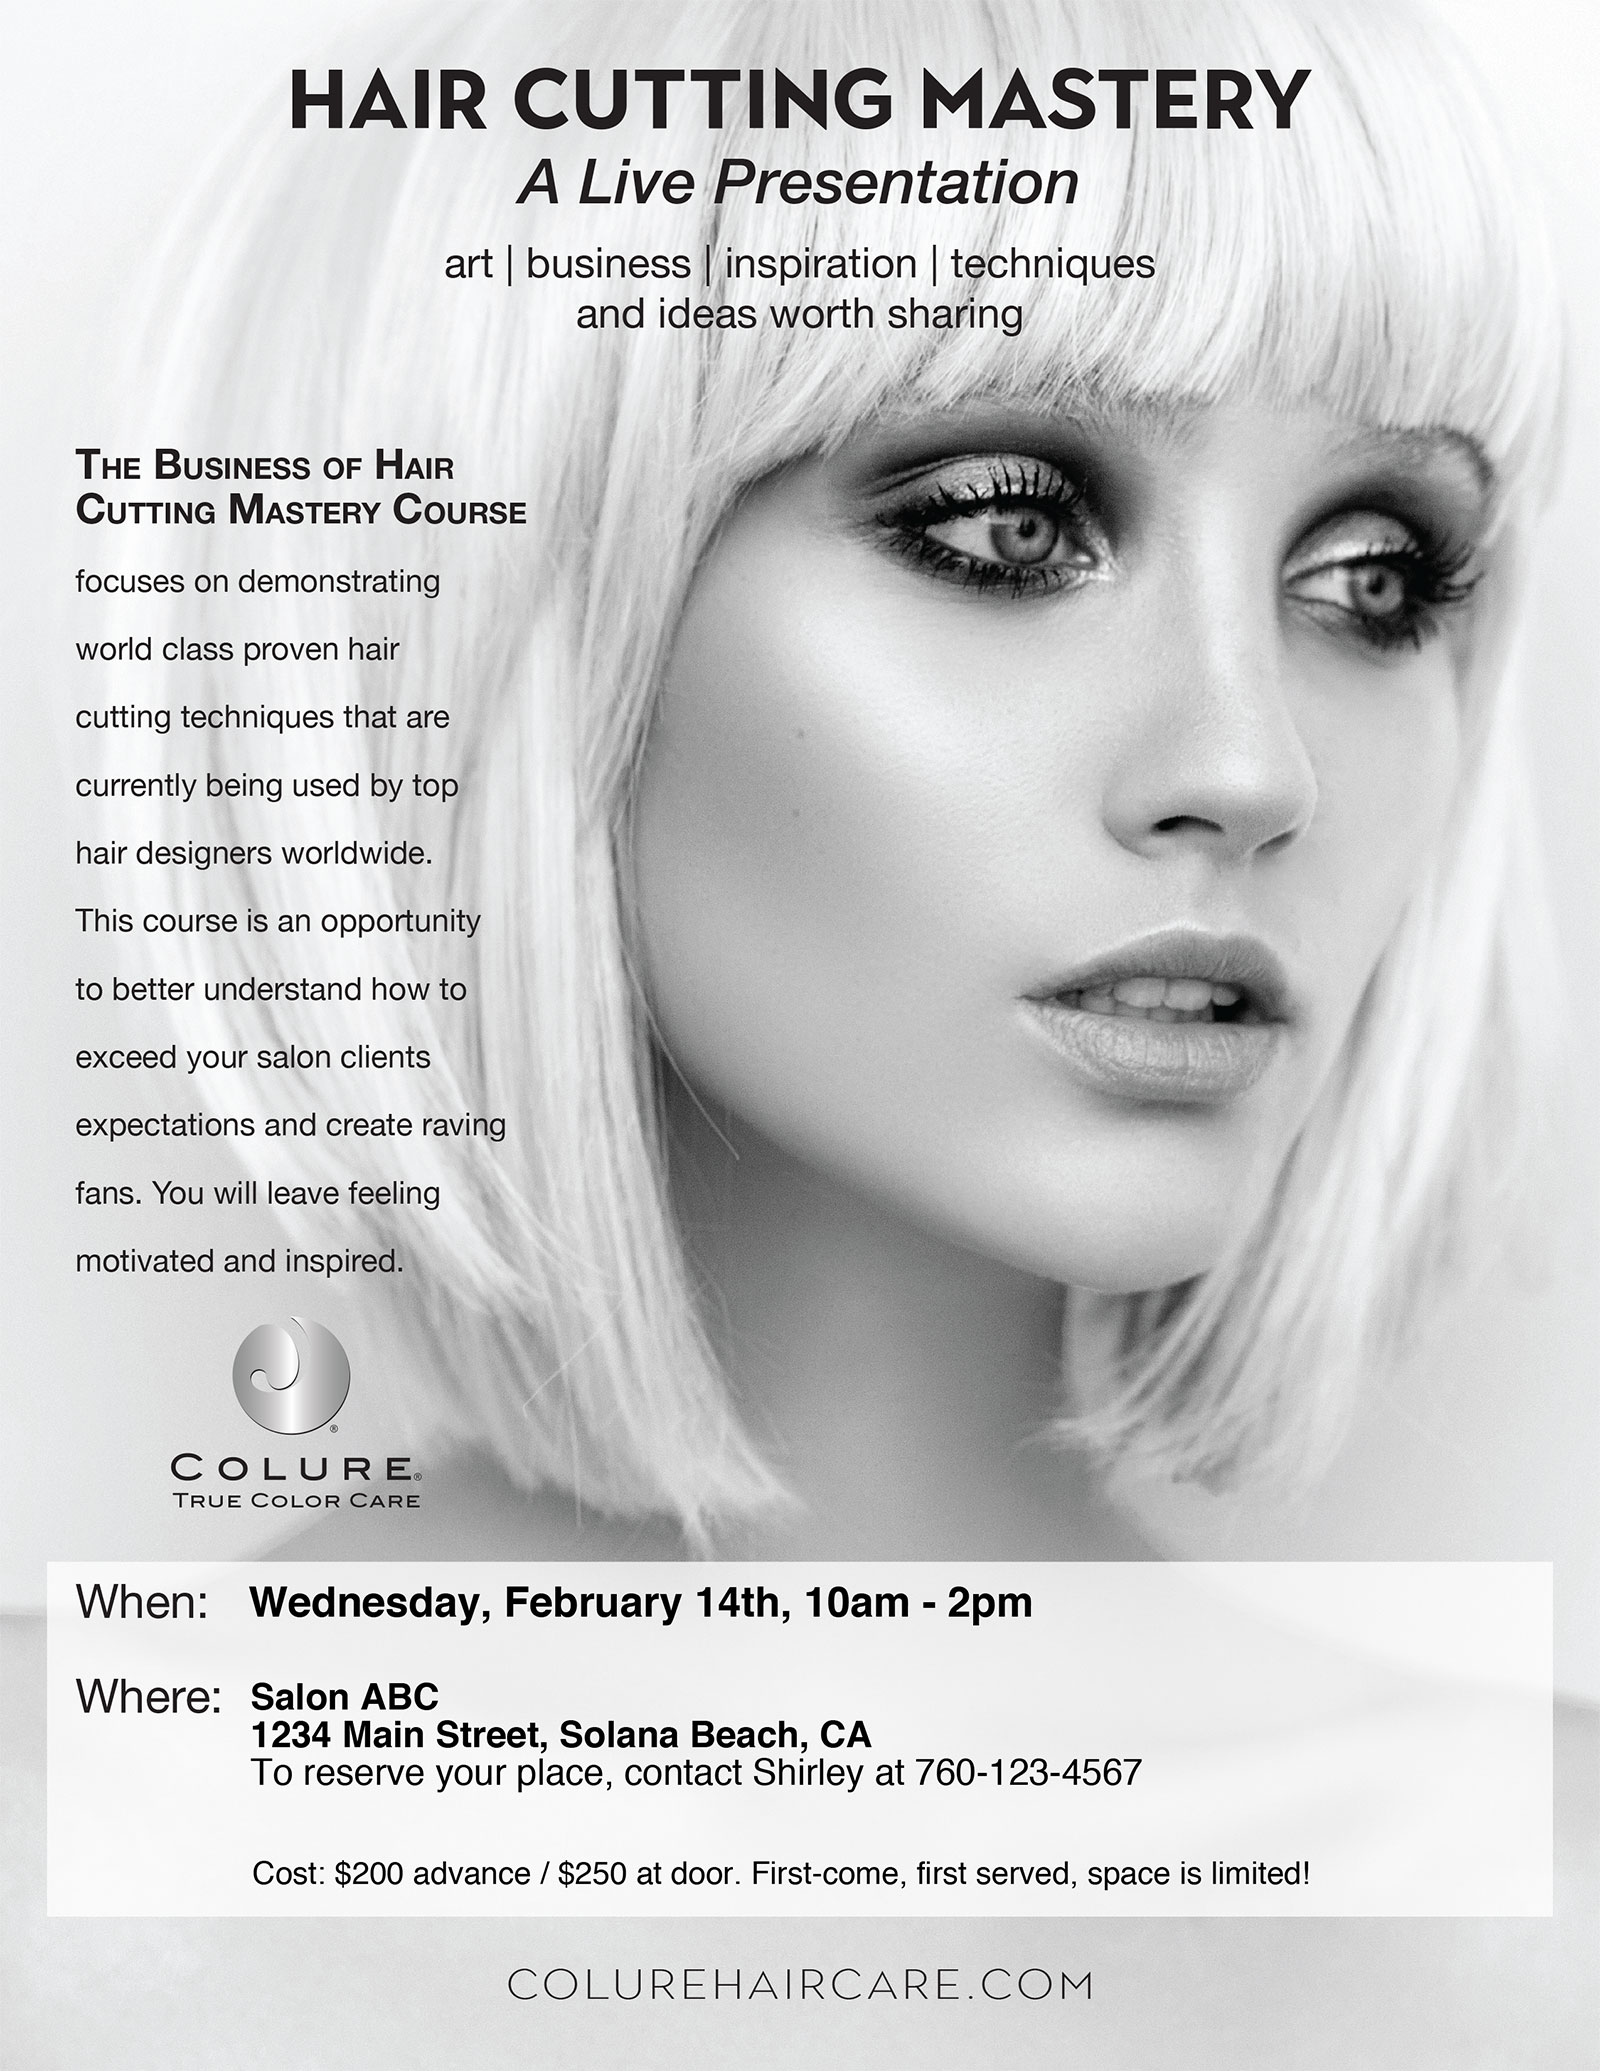 COLURE Course Flyer